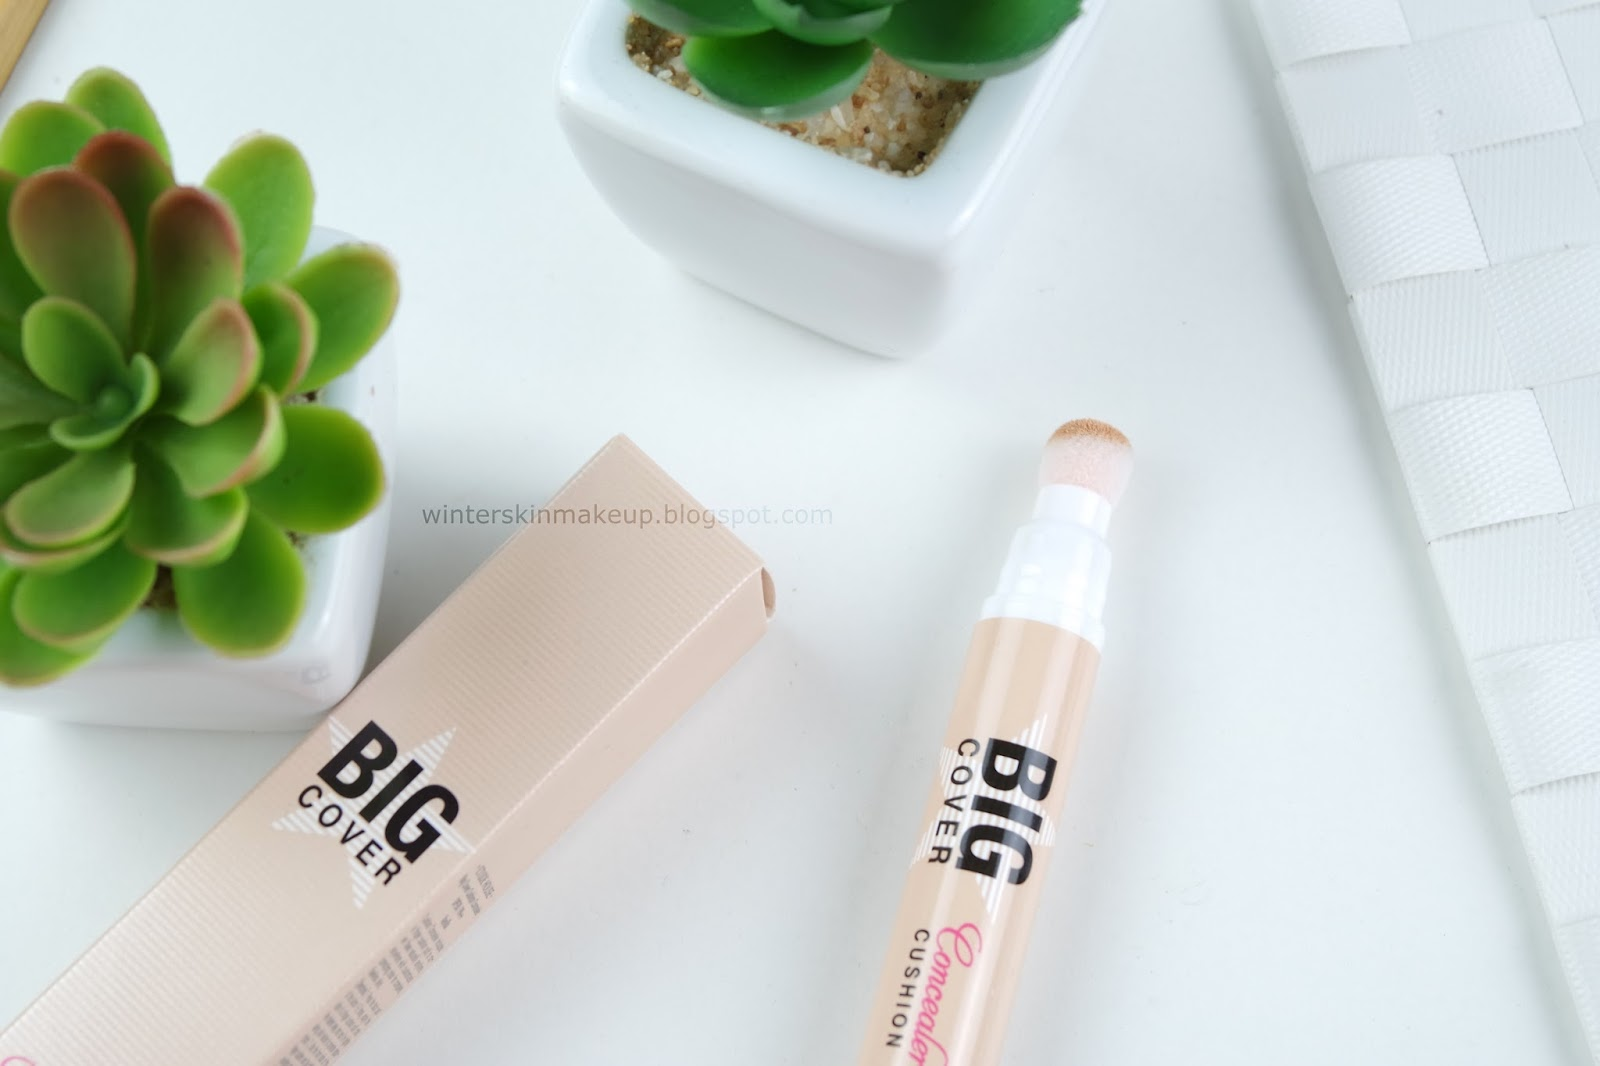 Etude House Big Cover Cushion Concealer - Vanilla